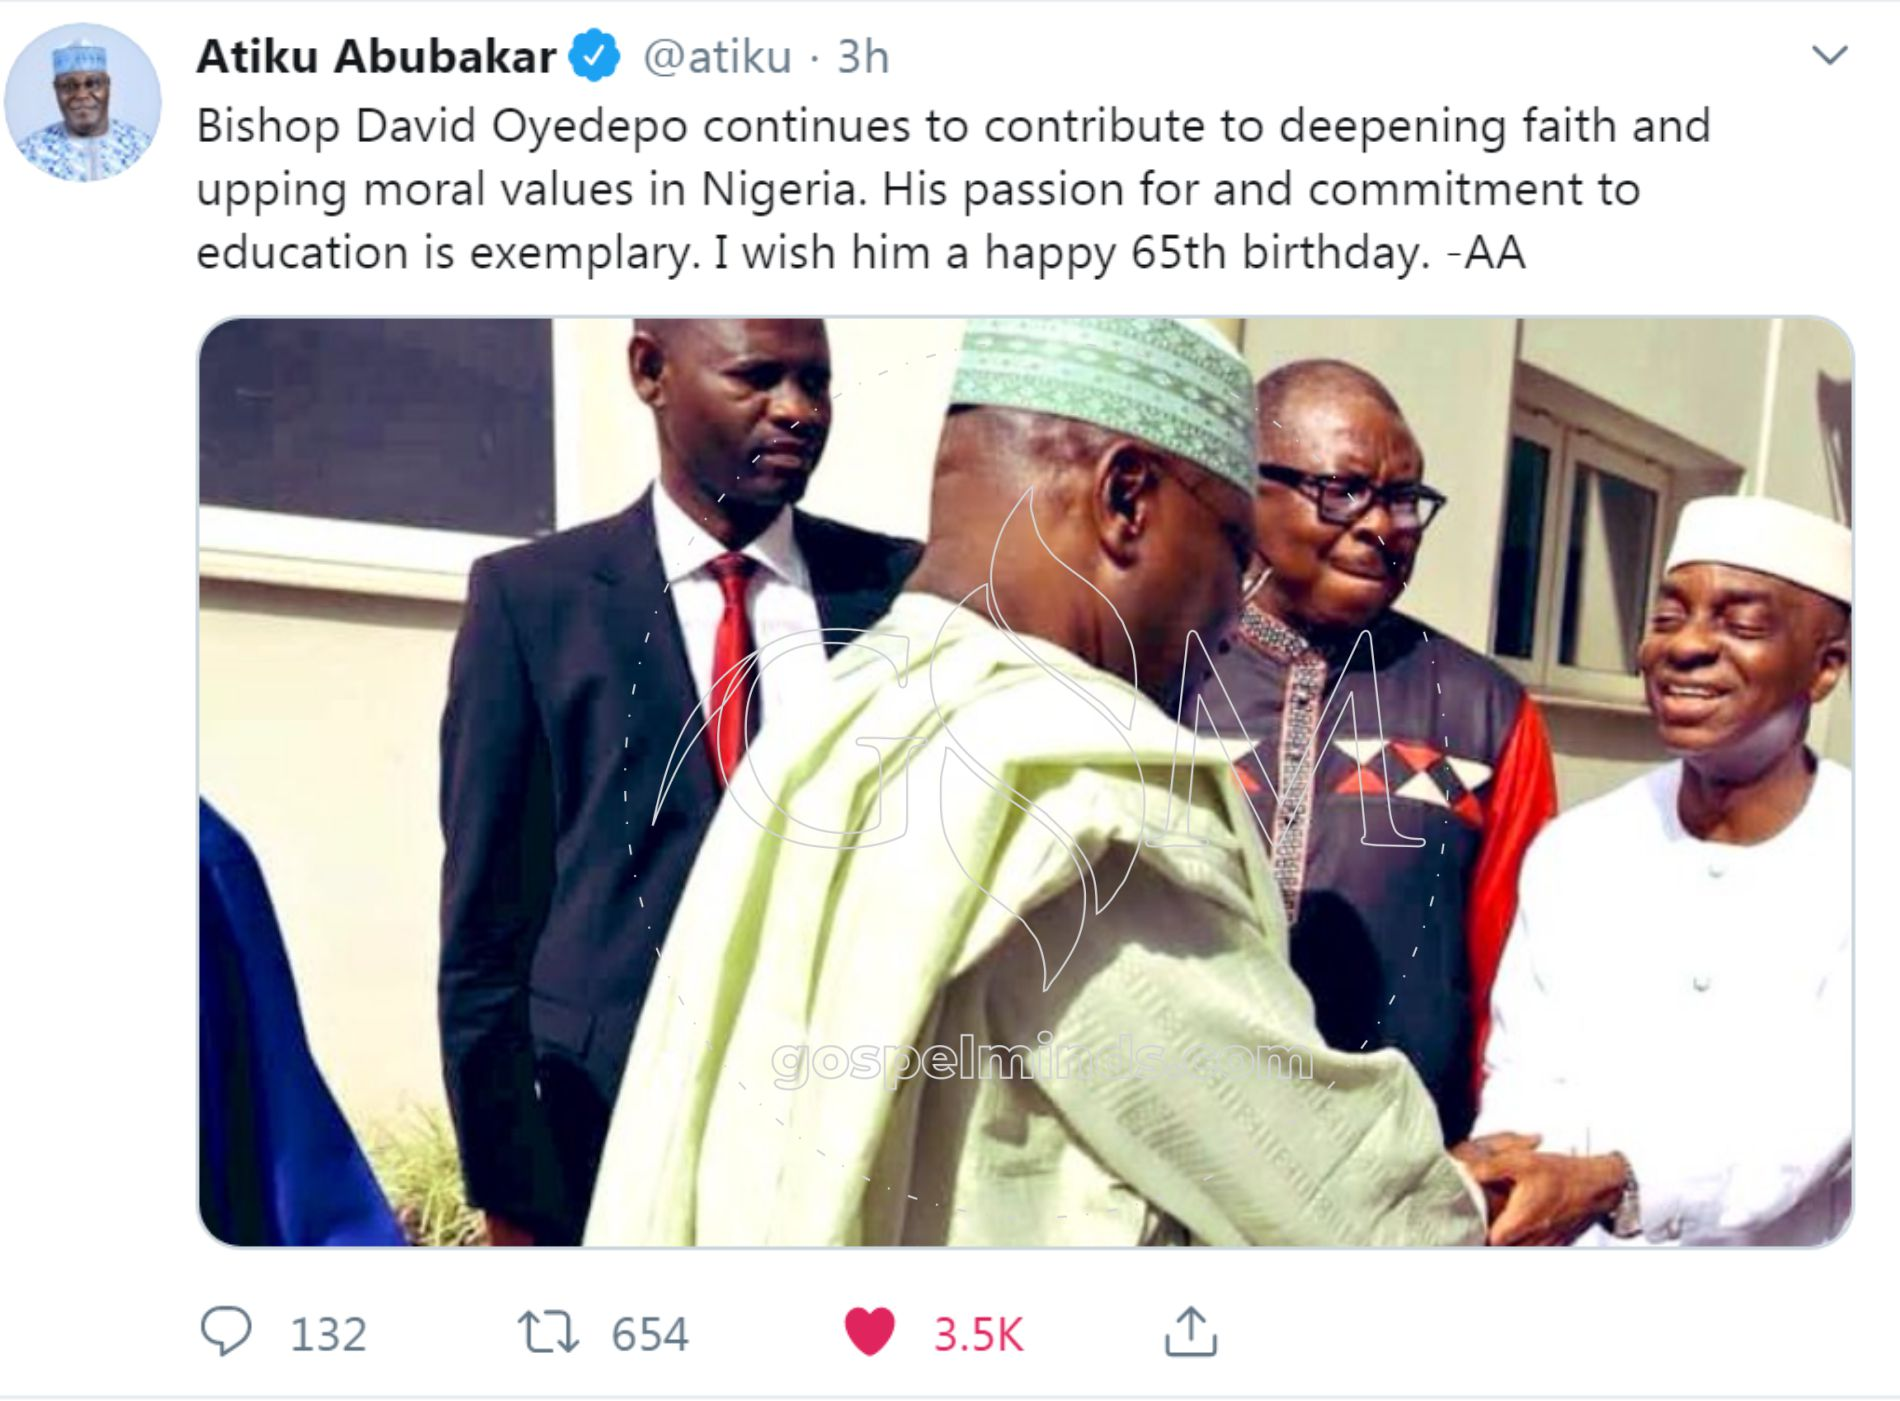 Atiku Celebrates Bishop David Oyedepo at 65th birthday